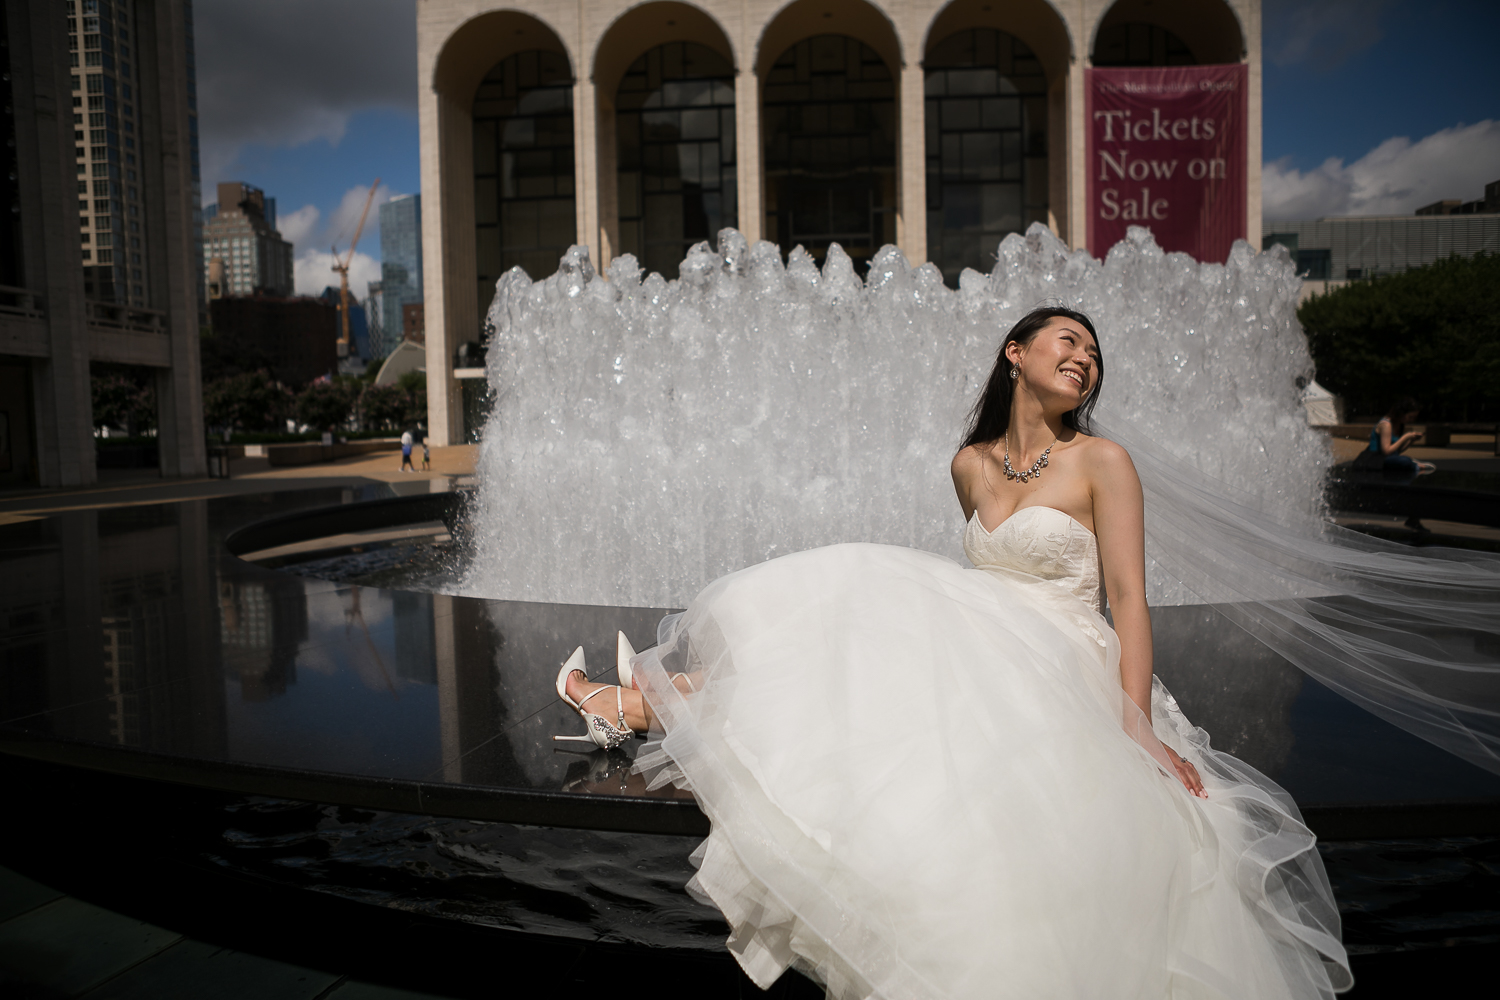 Bride in a strapless white wedding dress at Lincoln Center in New York City | Lincoln Center Wedding Photos | Jason and Susanna's Glam NYC Elopement